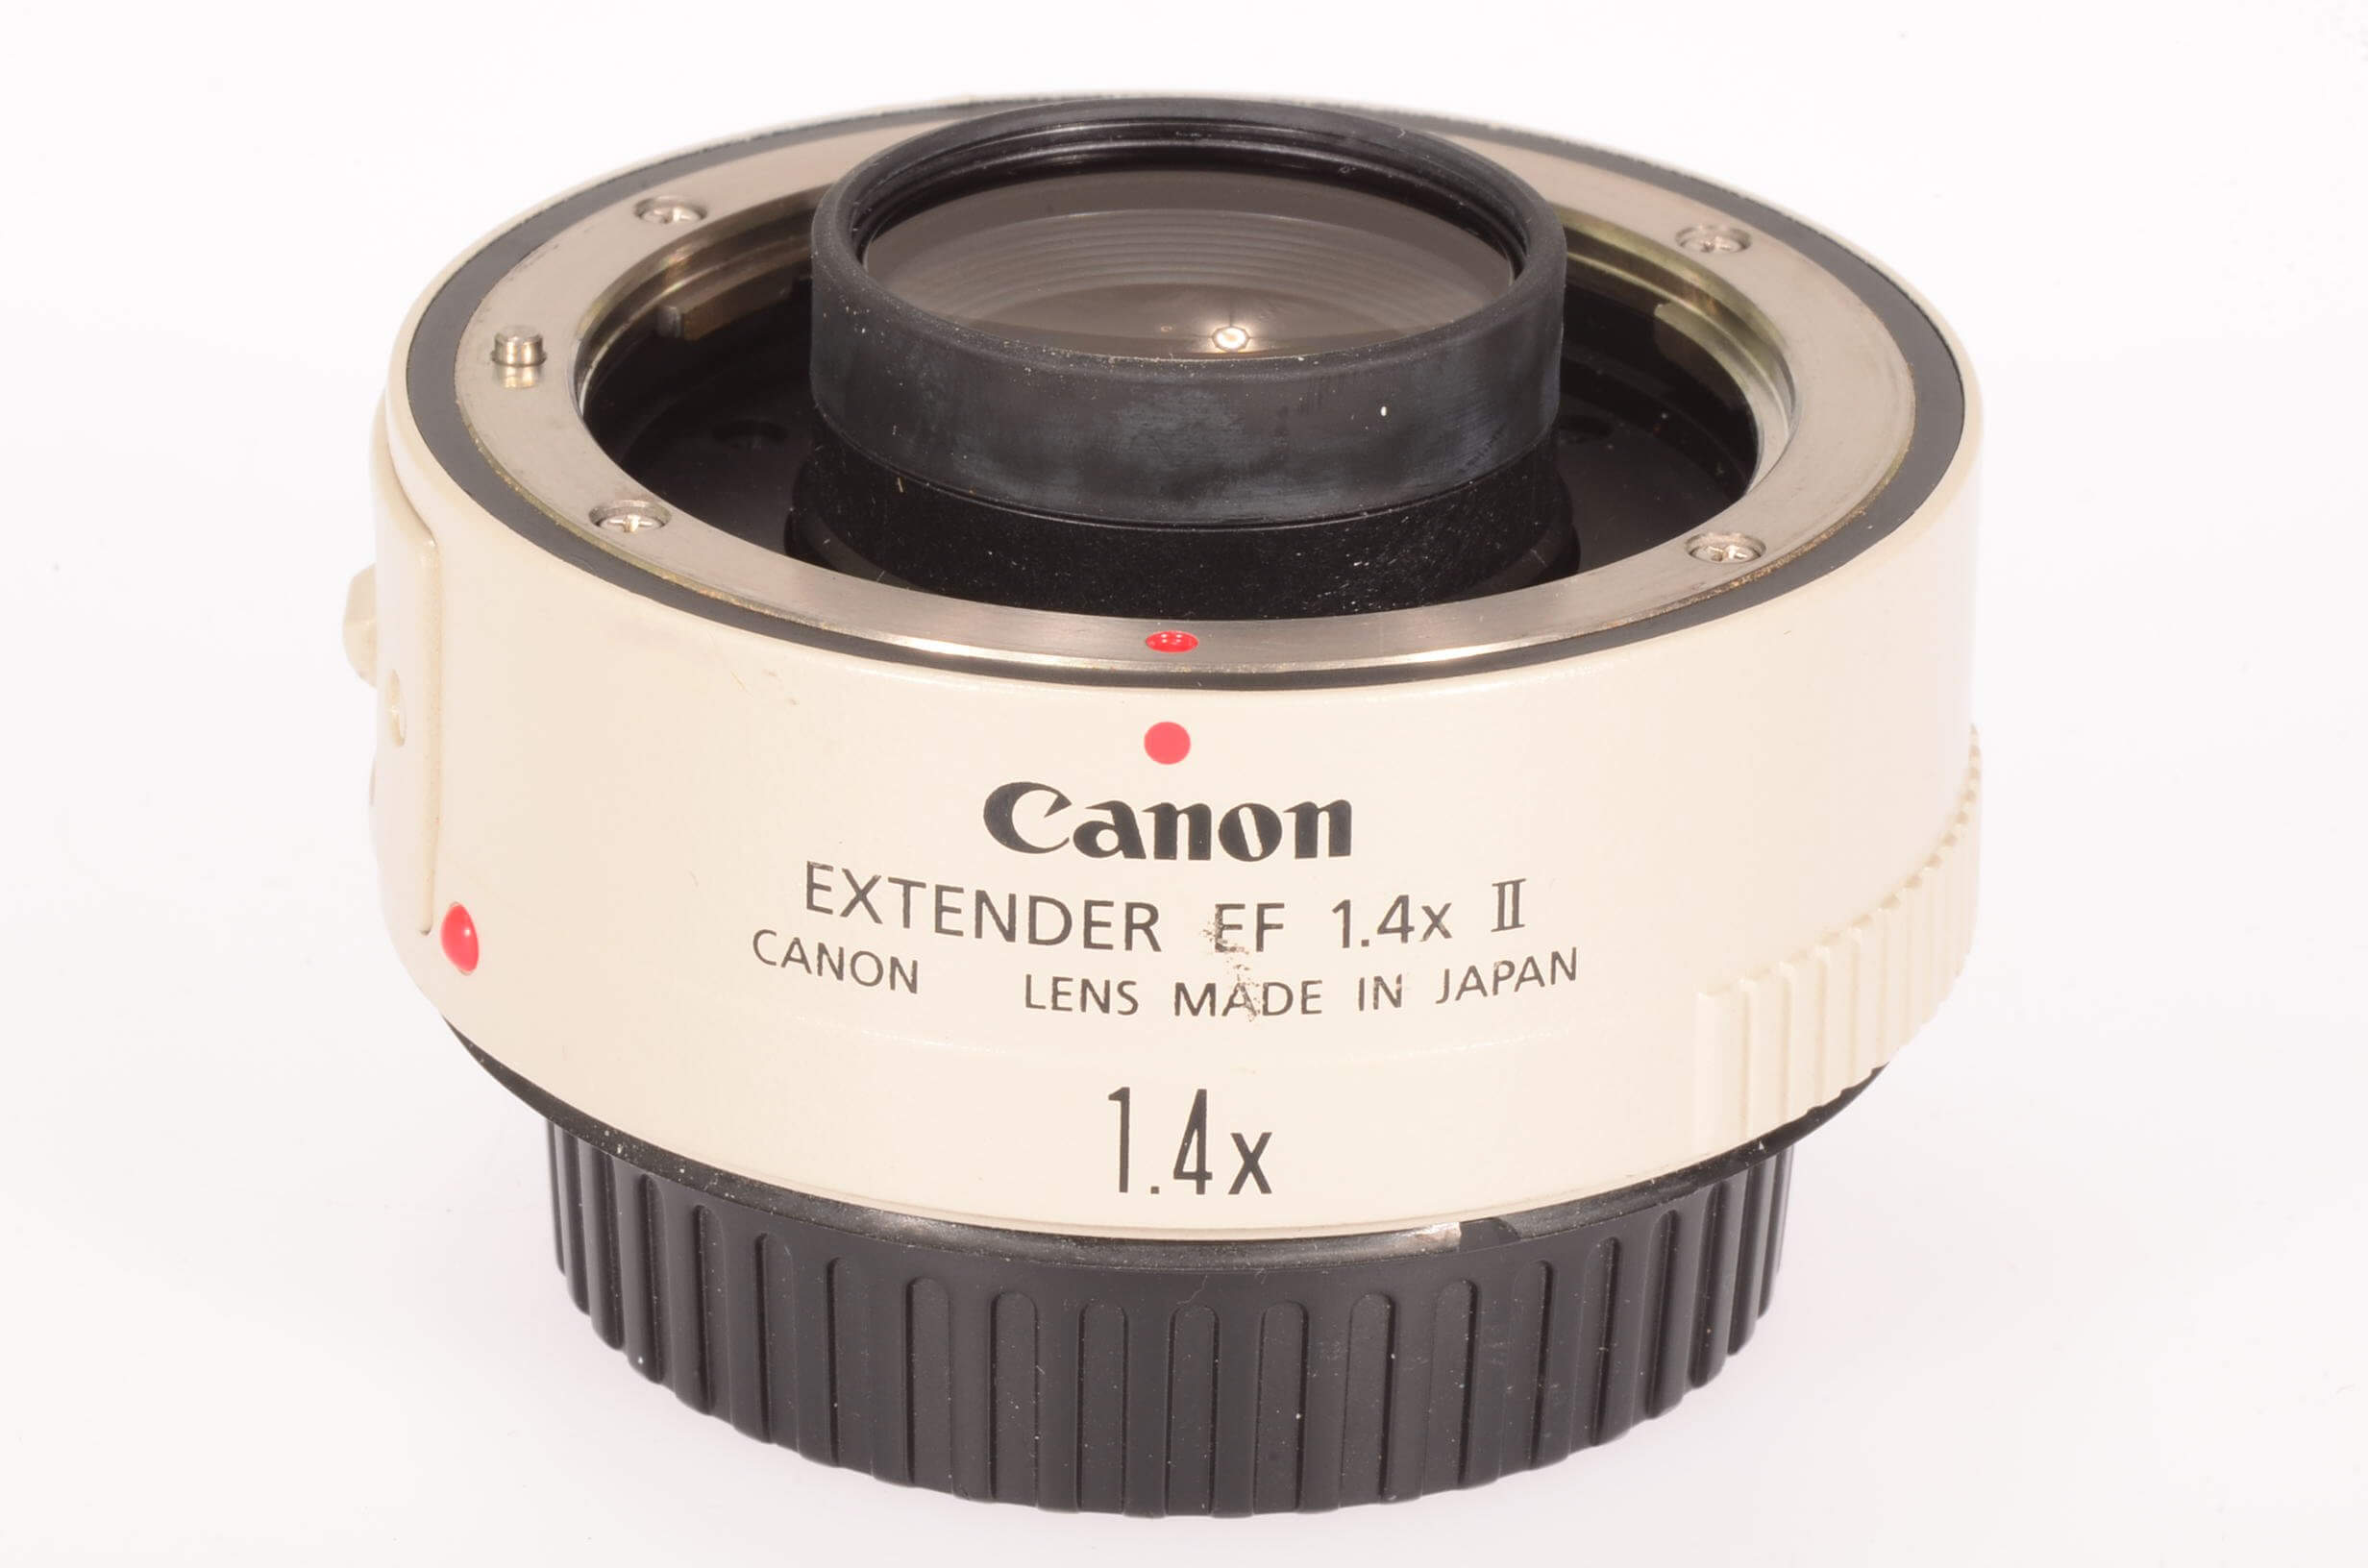 Canon 1.4x Extender EF II